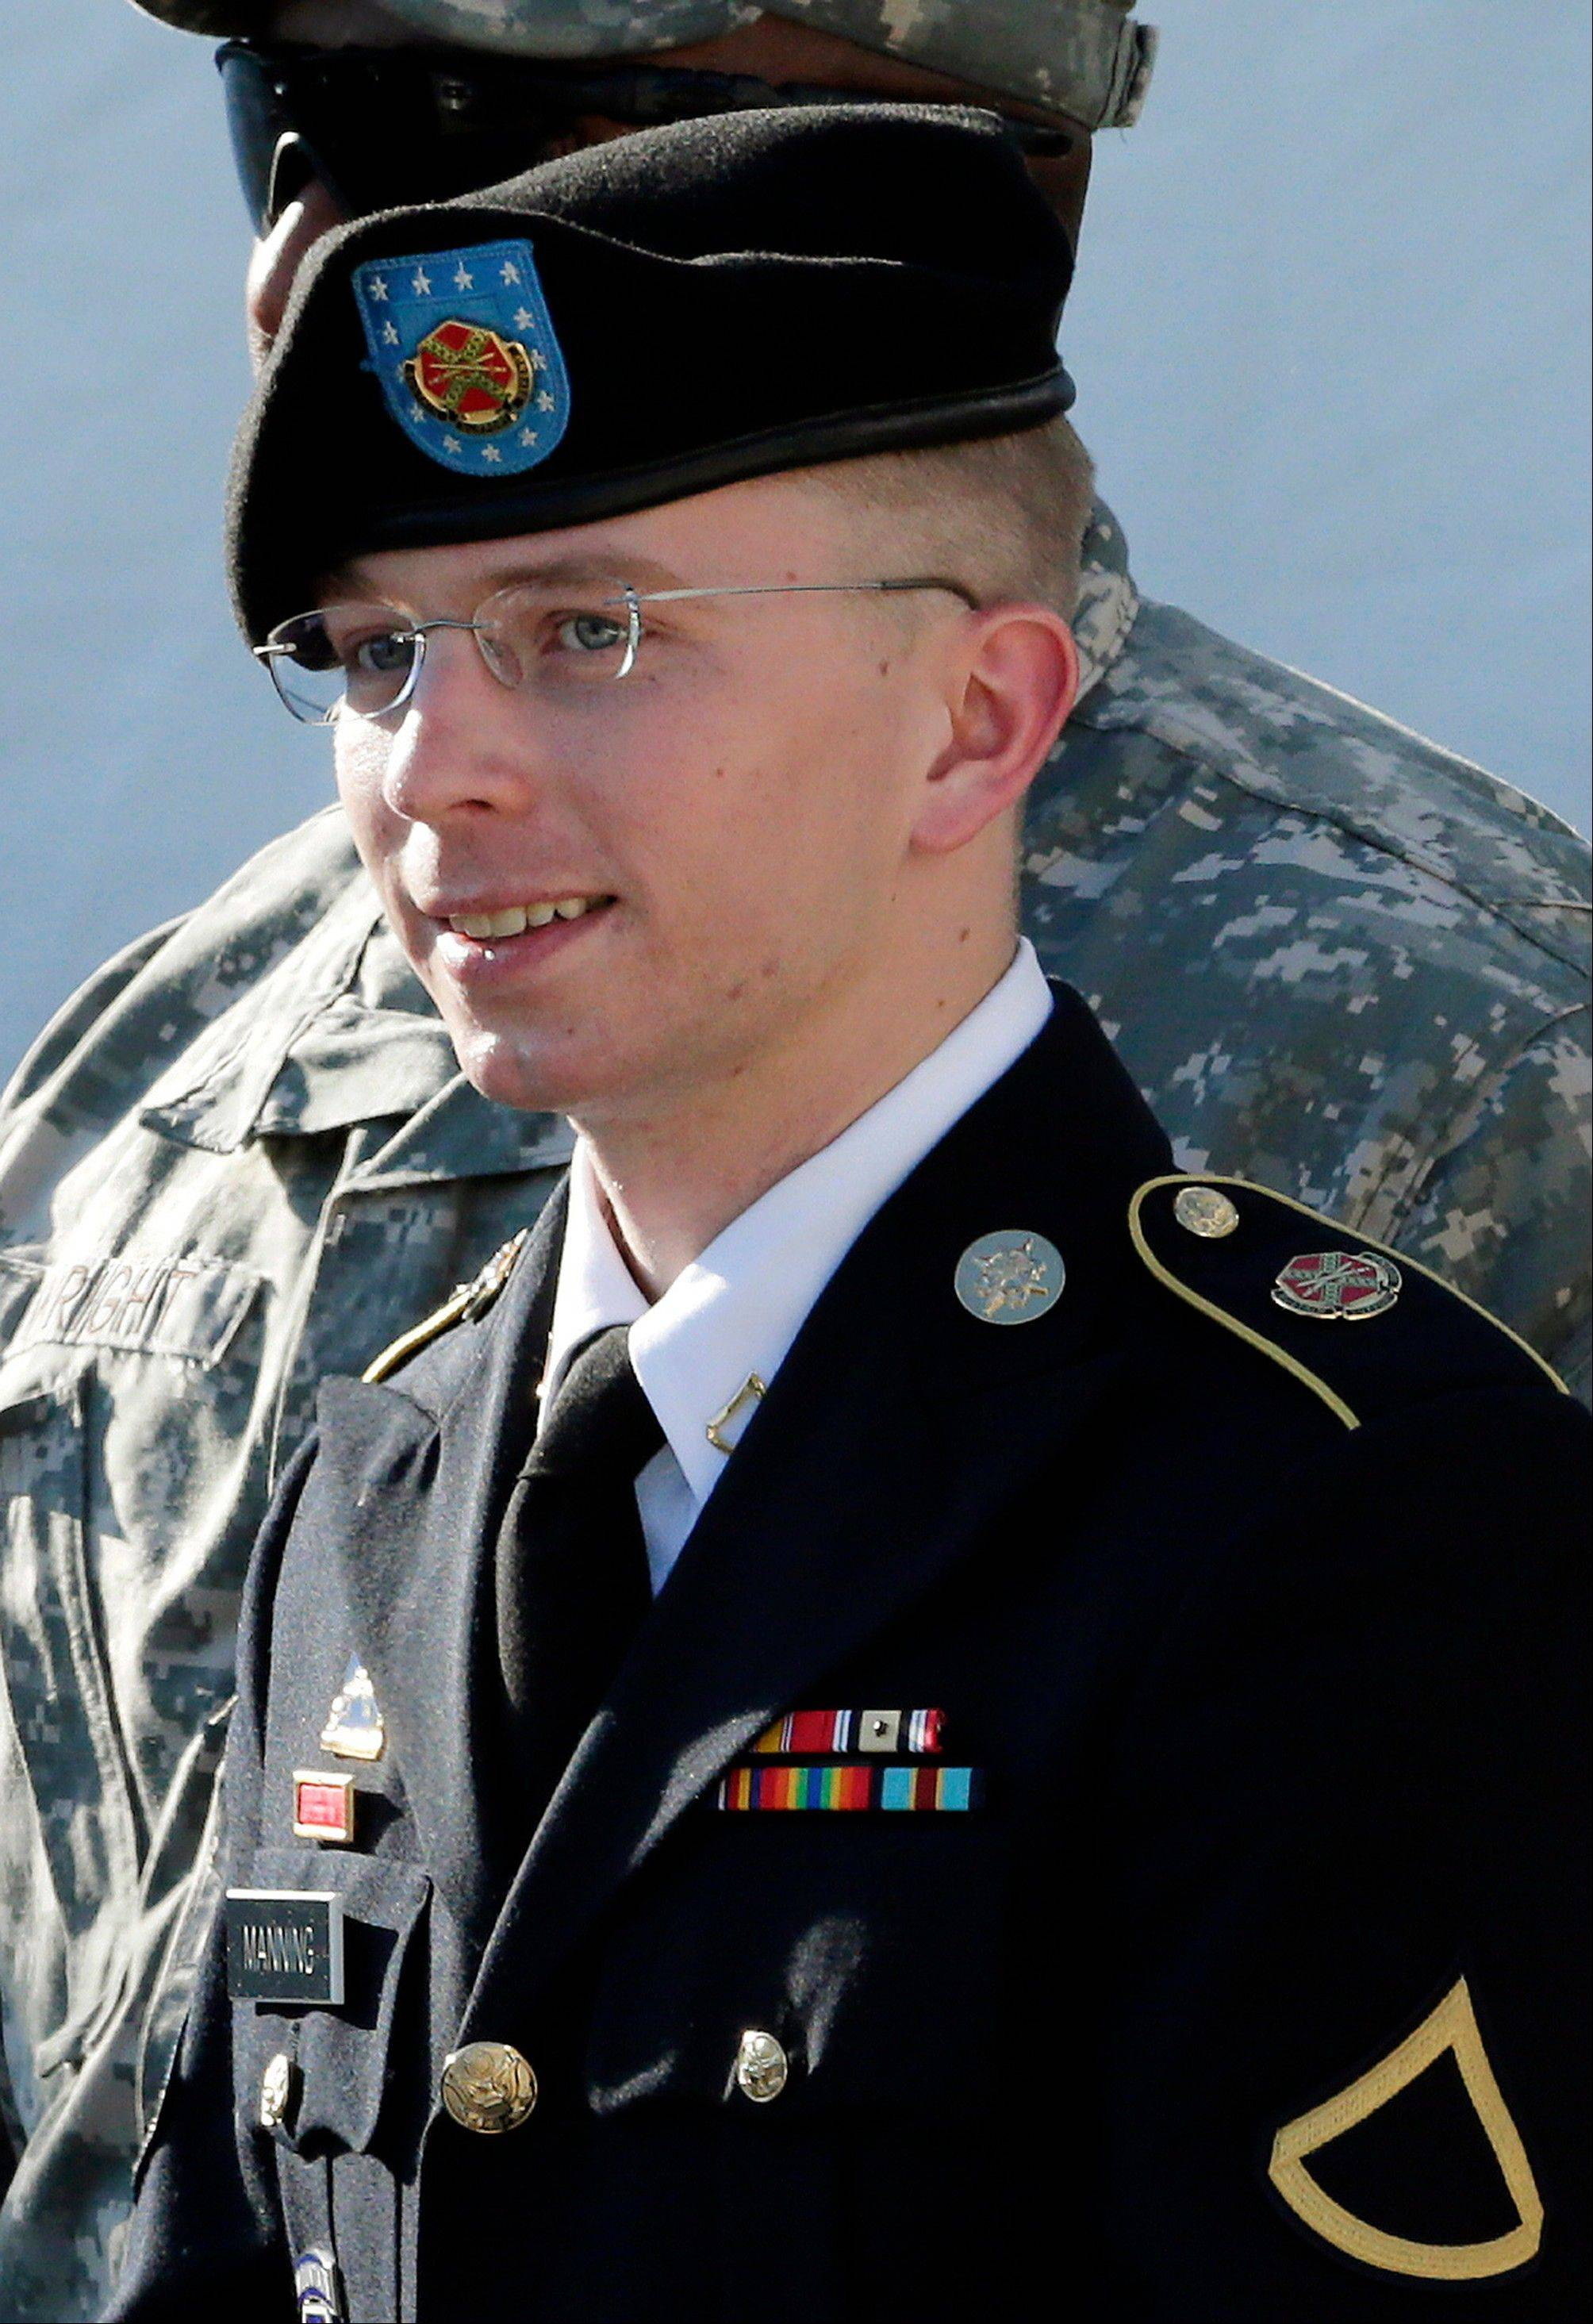 Army Pfc. Bradley Manning, the U.S. Army private charged with sending reams of government secrets to WikiLeaks, is expected to testify during a pretrial hearing starting Tuesday at Fort Meade. Manning is seeking dismissal of all charges. He claims his solitary confinement, sometimes with no clothing, was illegal punishment.